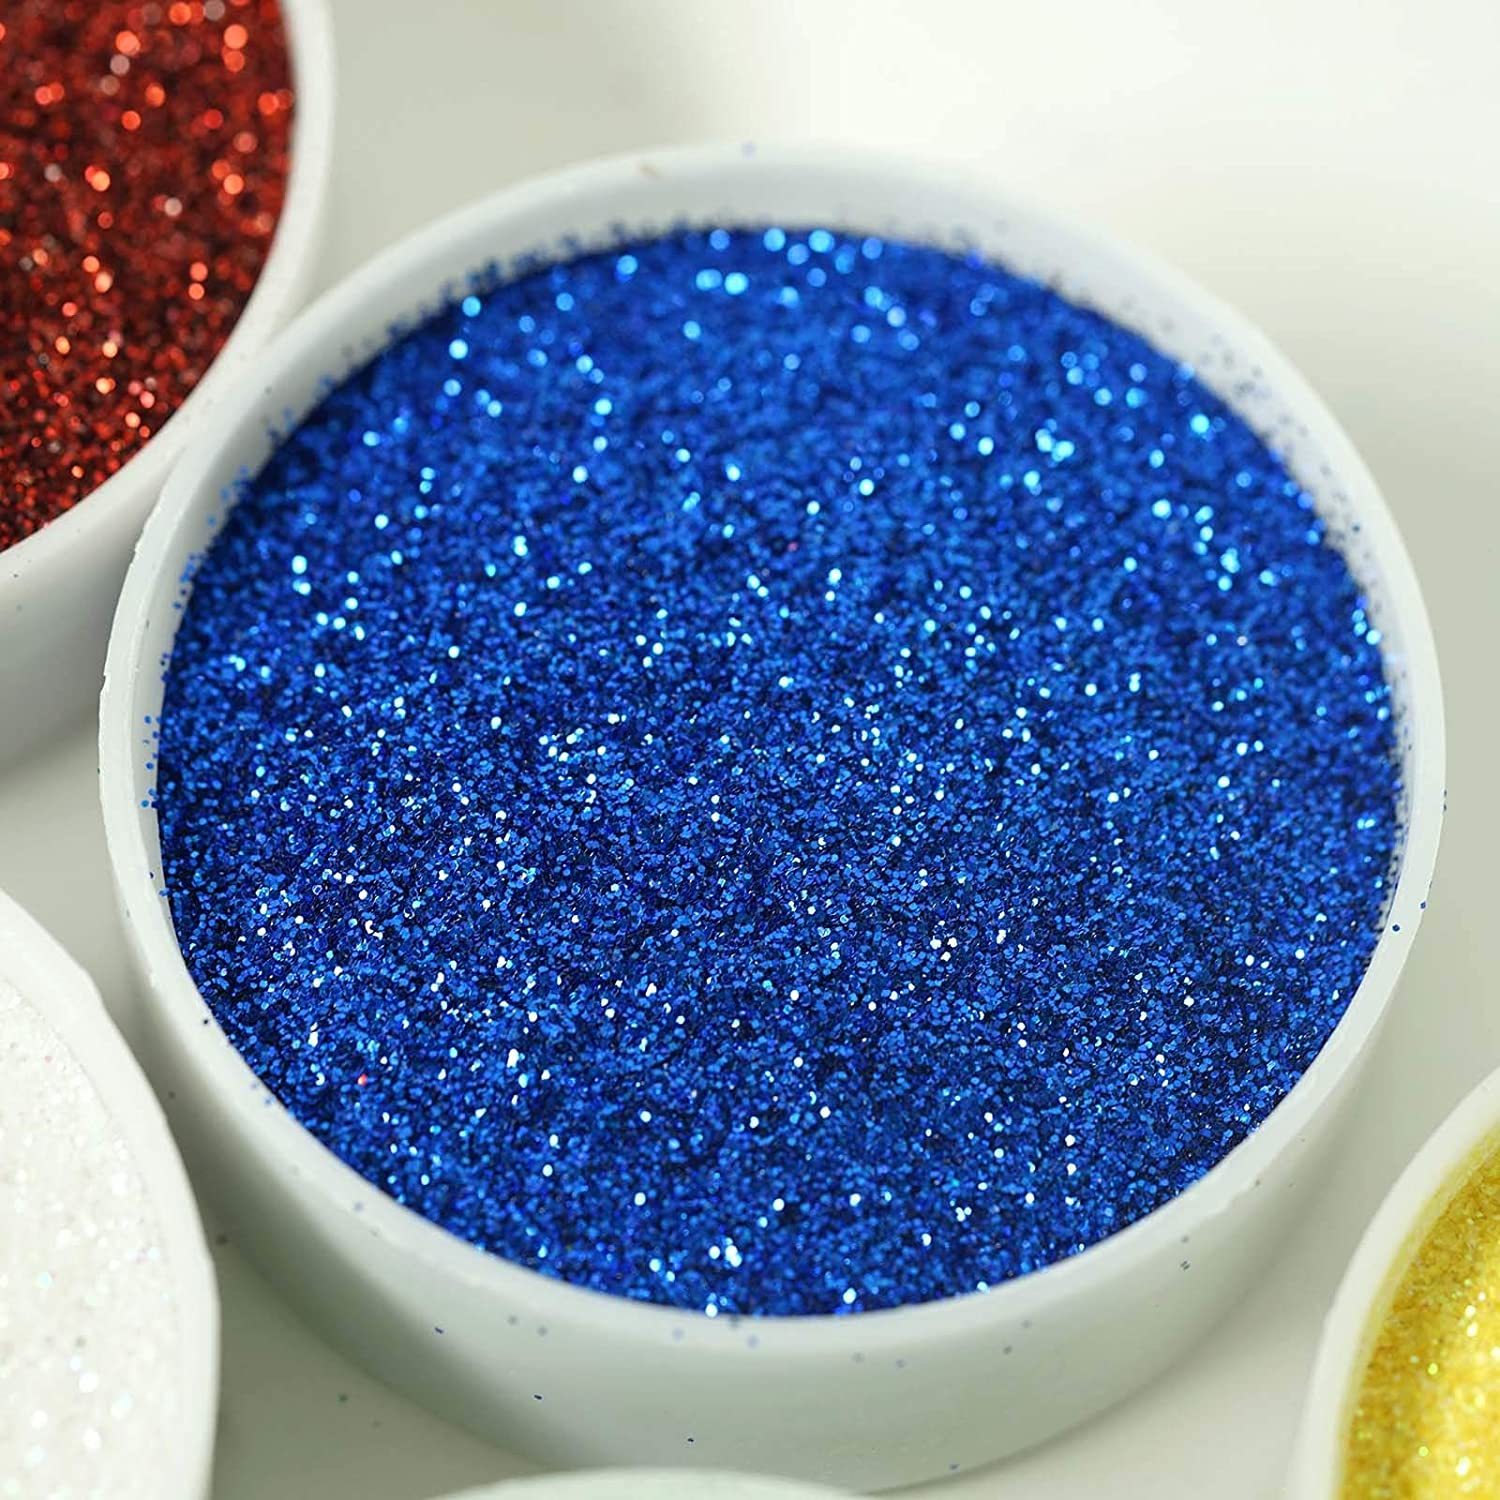 Efavormart 1 Pound Aqua DIY Art /& Craft Glitter Extra Fine with Shaker Bottle for Wedding Party Event Table Centerpieces Decor